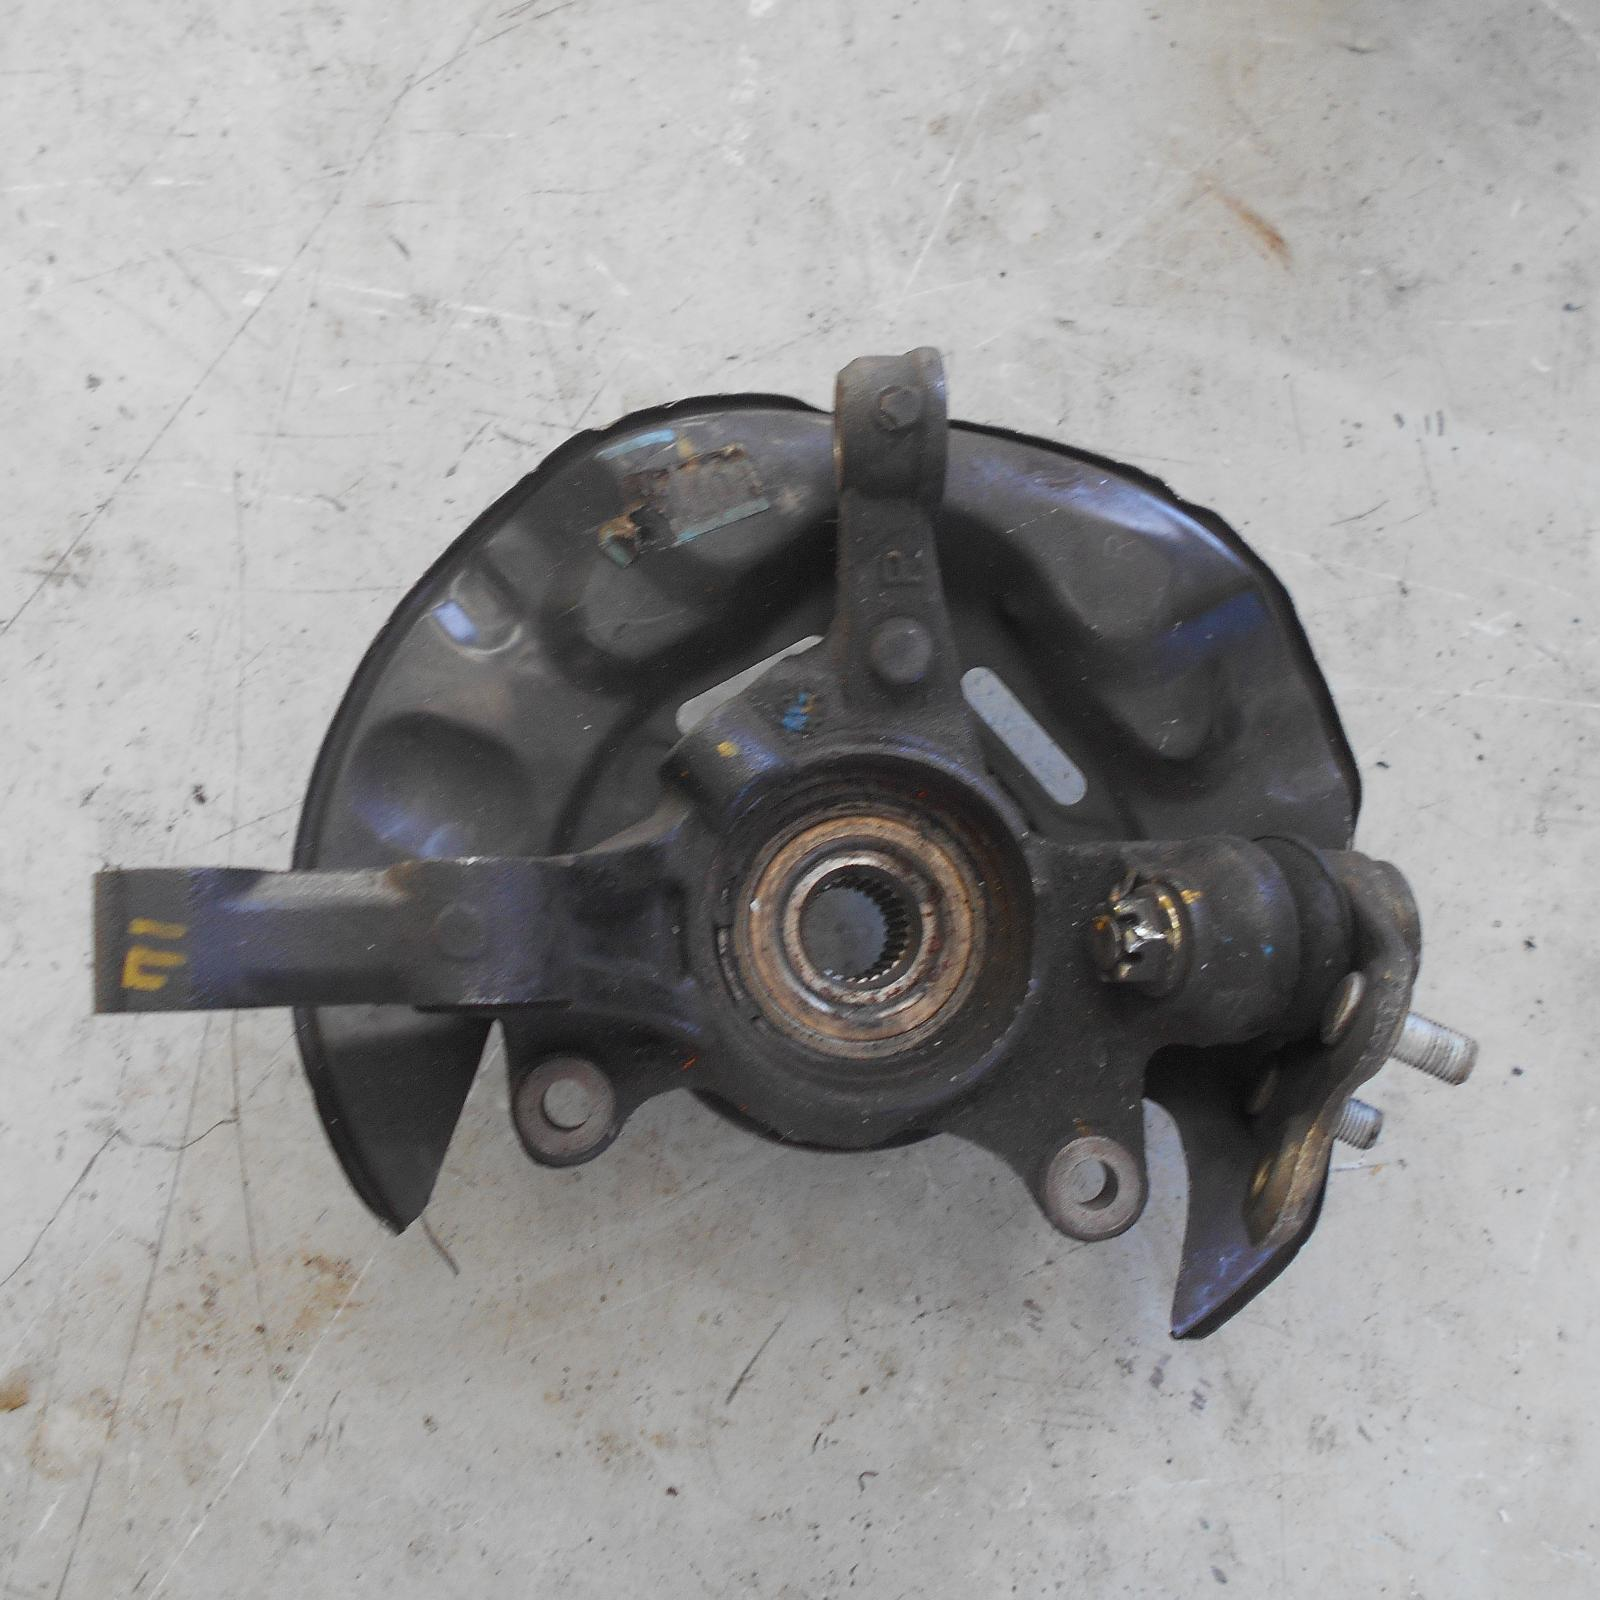 TOYOTA COROLLA, Right Front Hub Assembly, ZZE122 (JAPAN-VIN JTD), ABS TYPE, 12/01-06/07